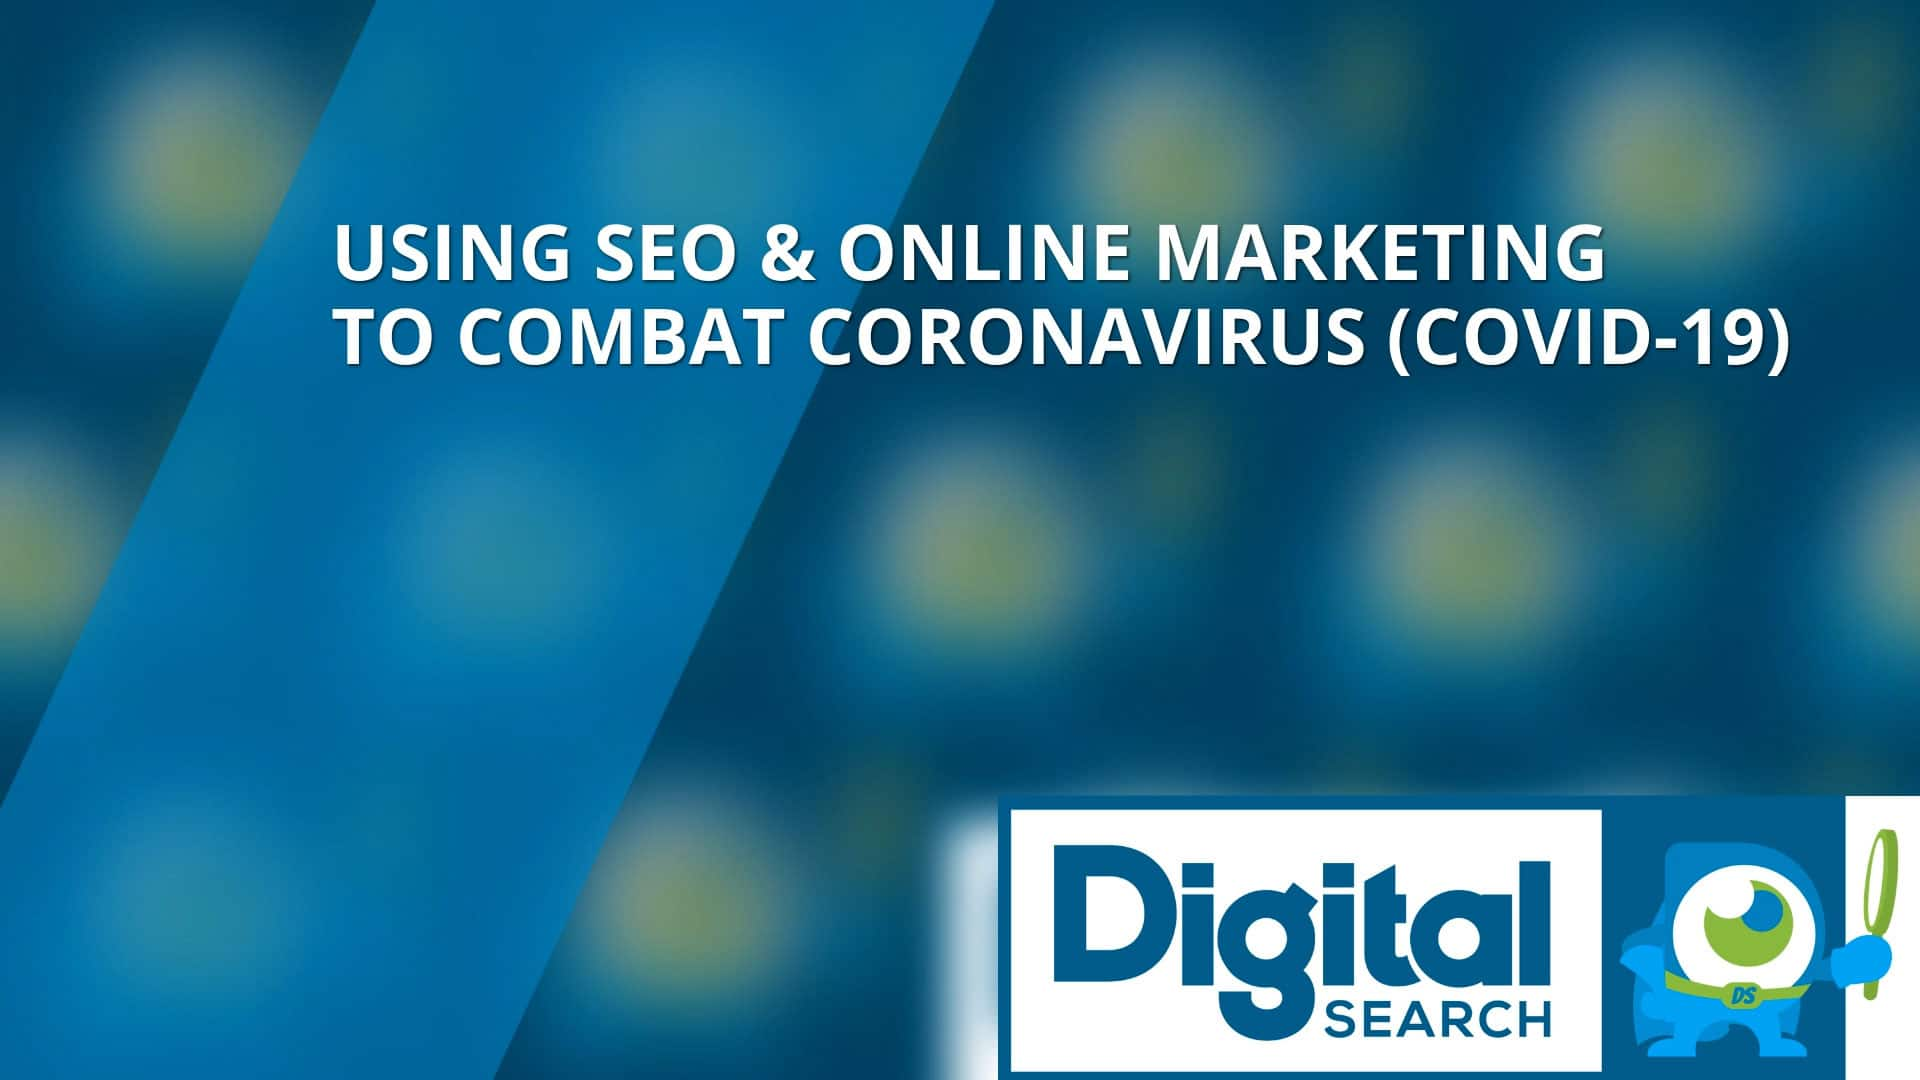 Using SEO & Online Marketing to Combat the Coronavirus